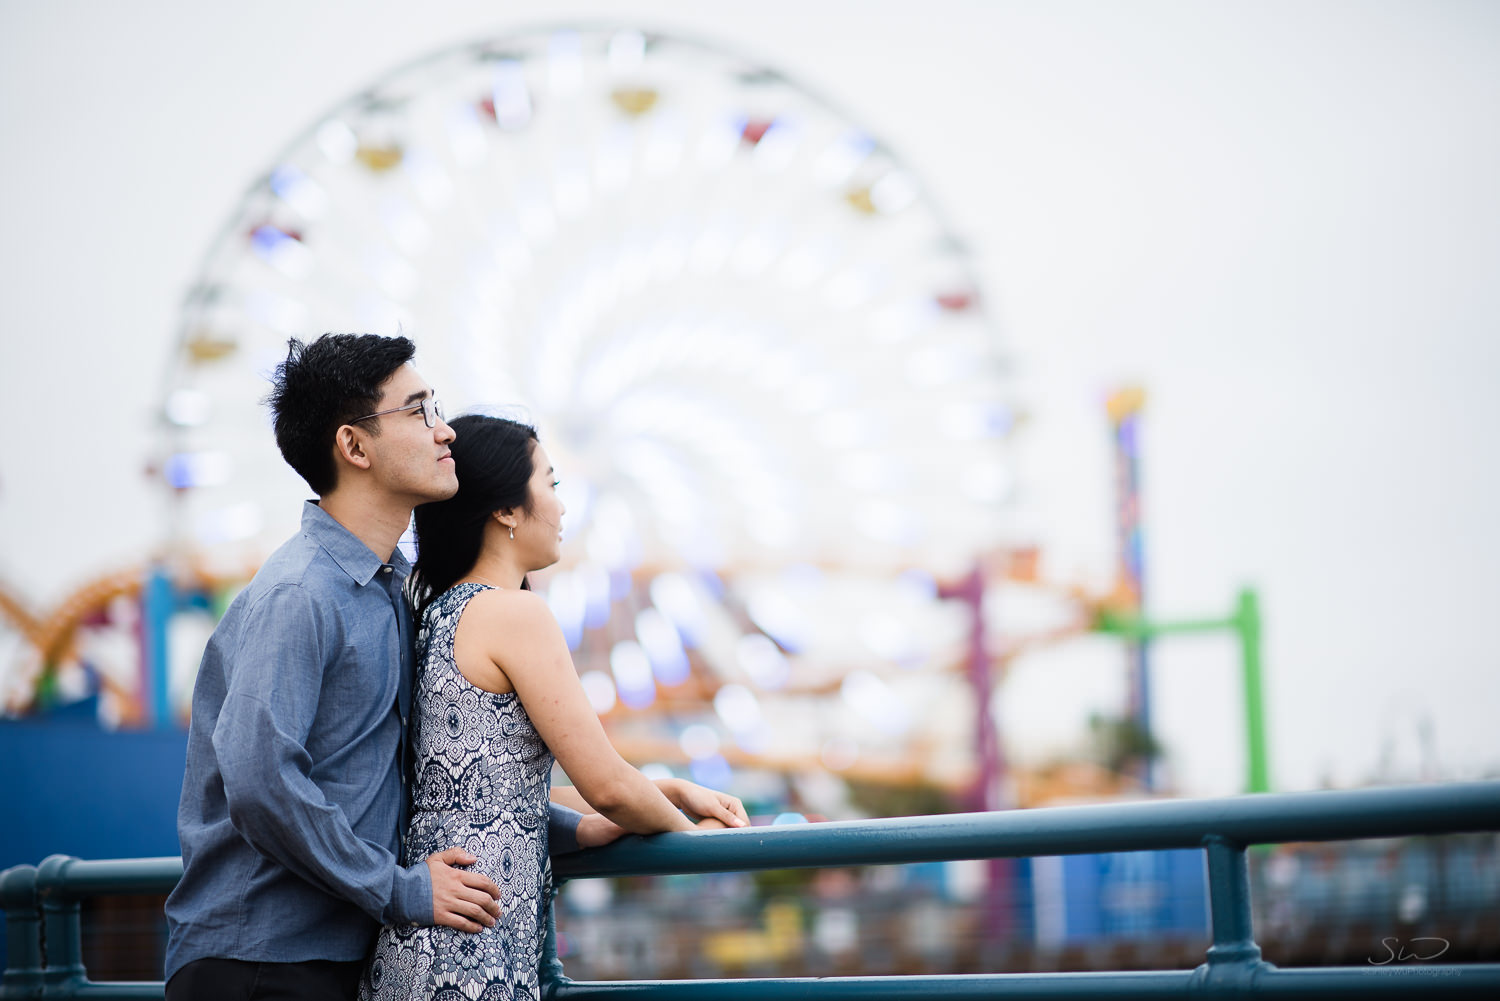 downtown-santa-monica-pier-and-beach-engagement-stanley-wu-photography-los-angeles-portrait-and-wedding-photographer-45.jpg